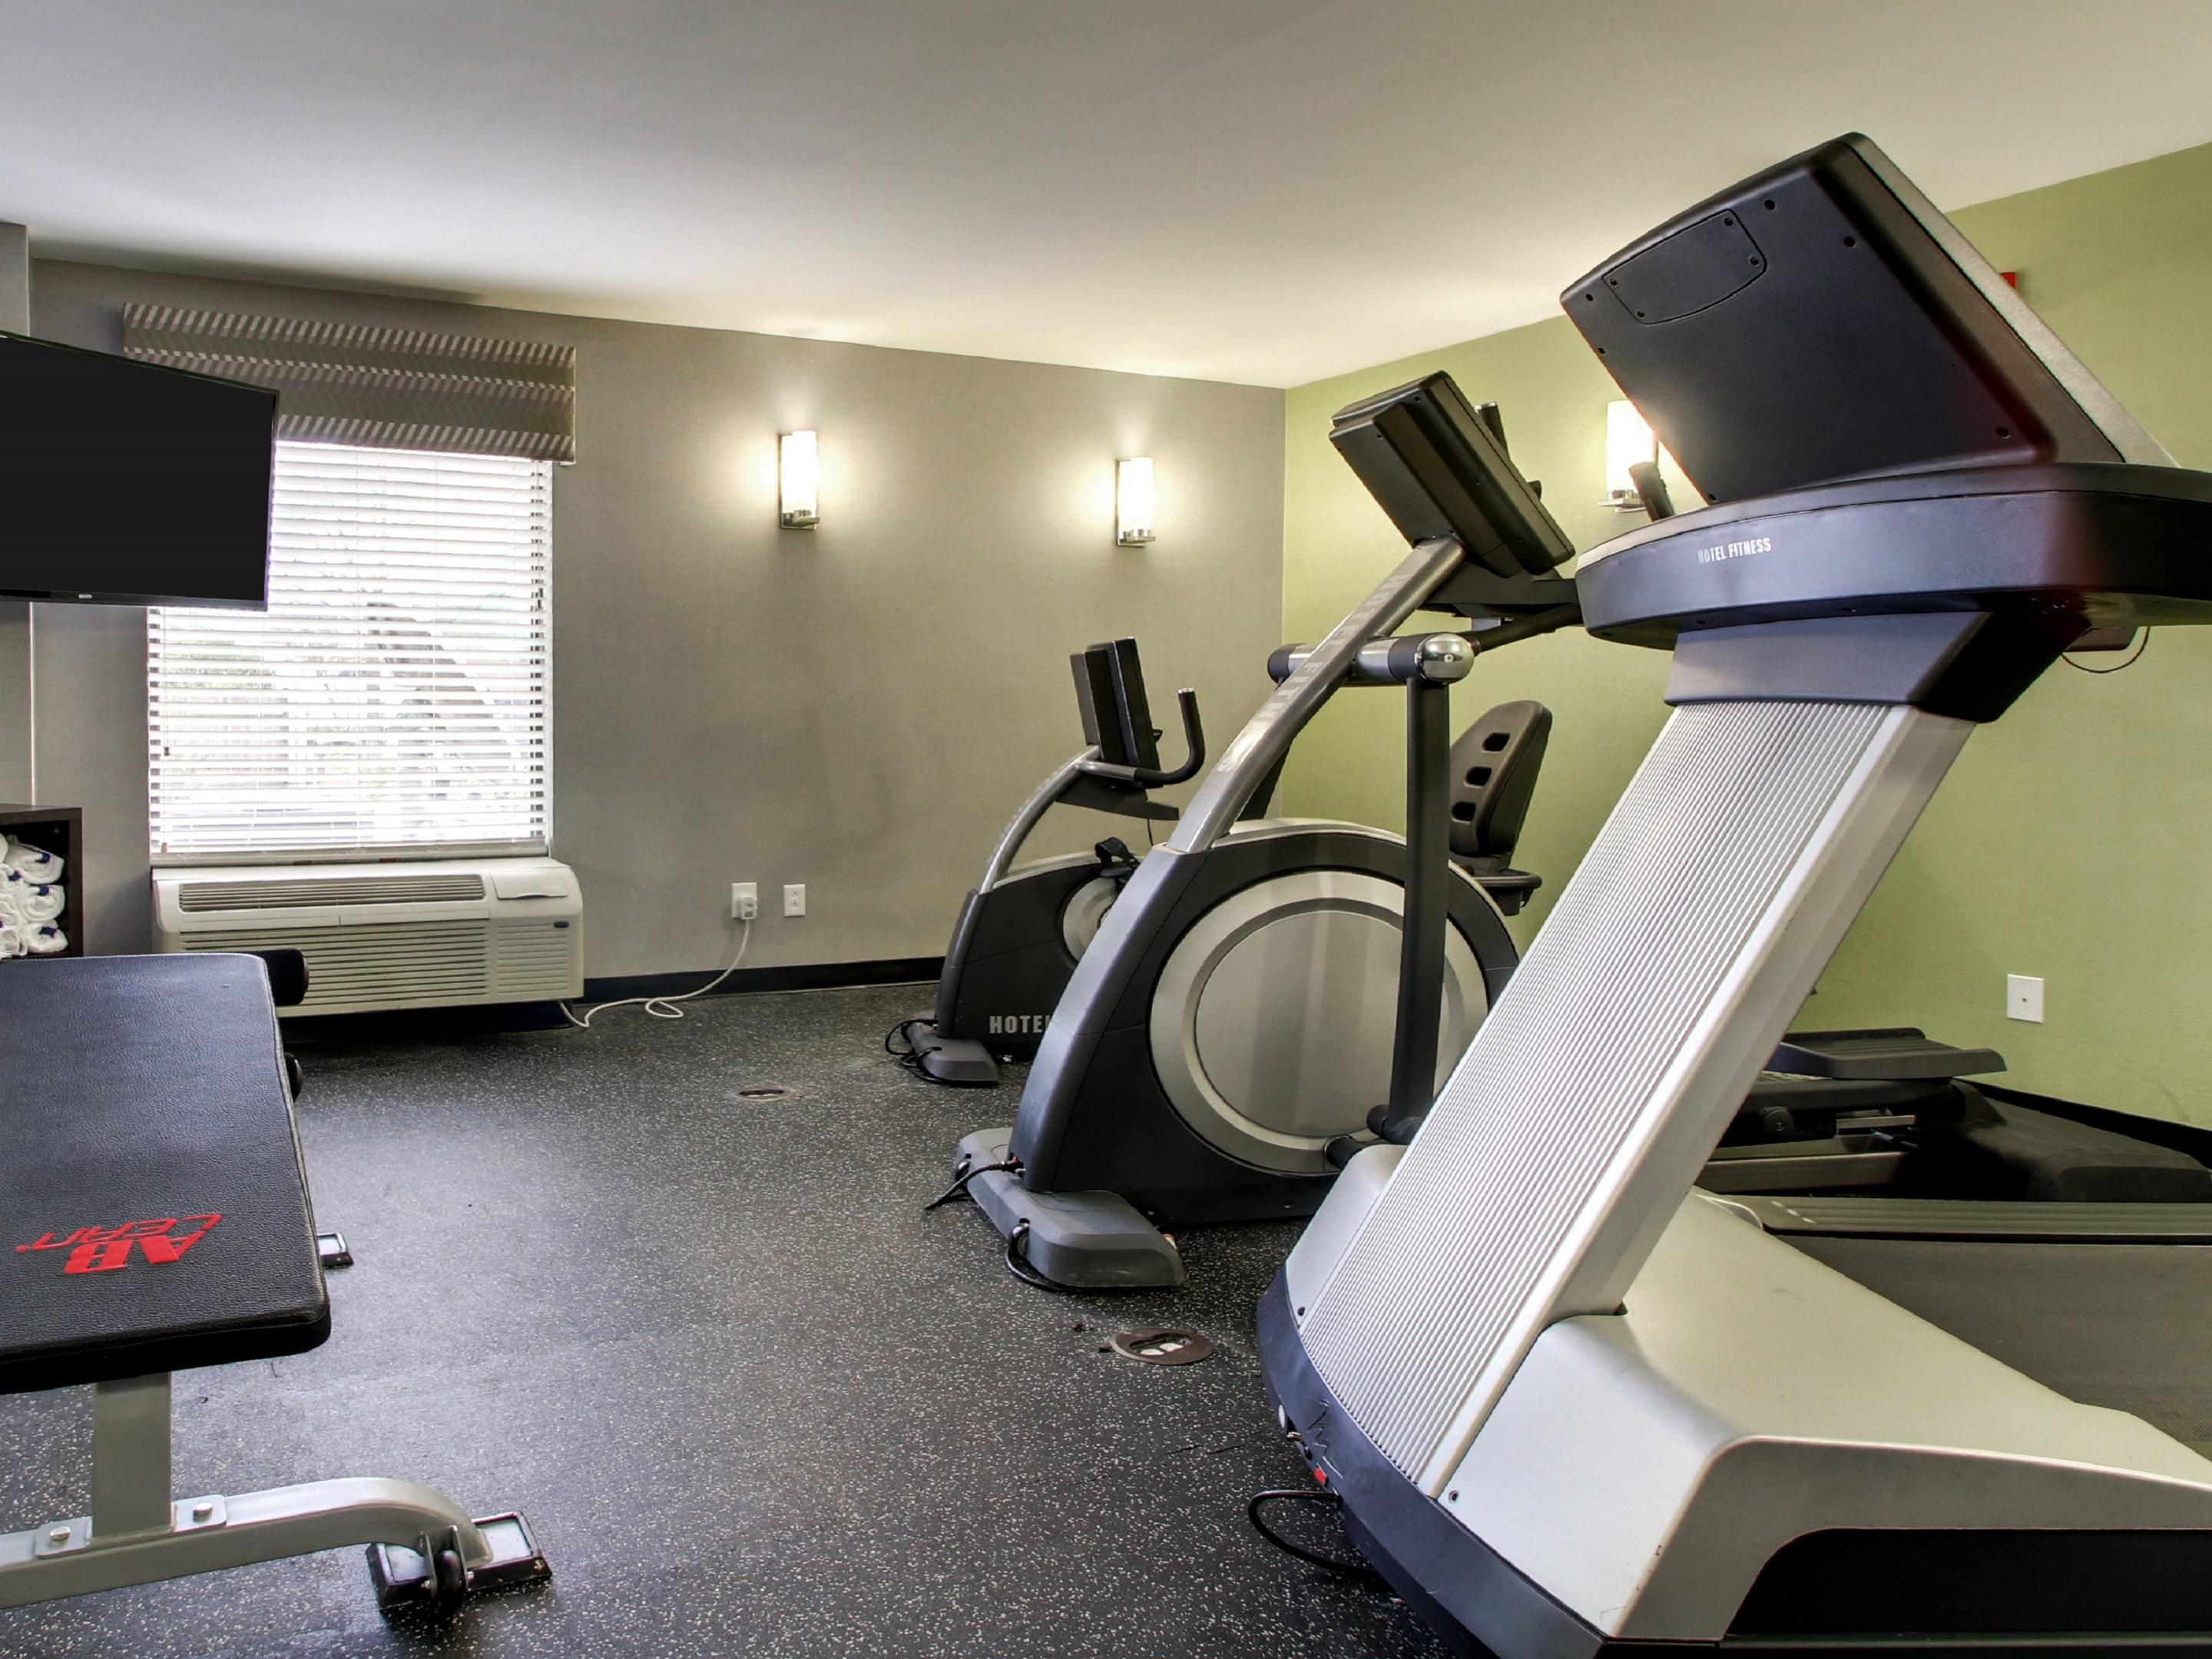 Stay Smart, Say Fit with our convenient on-site Fitness room